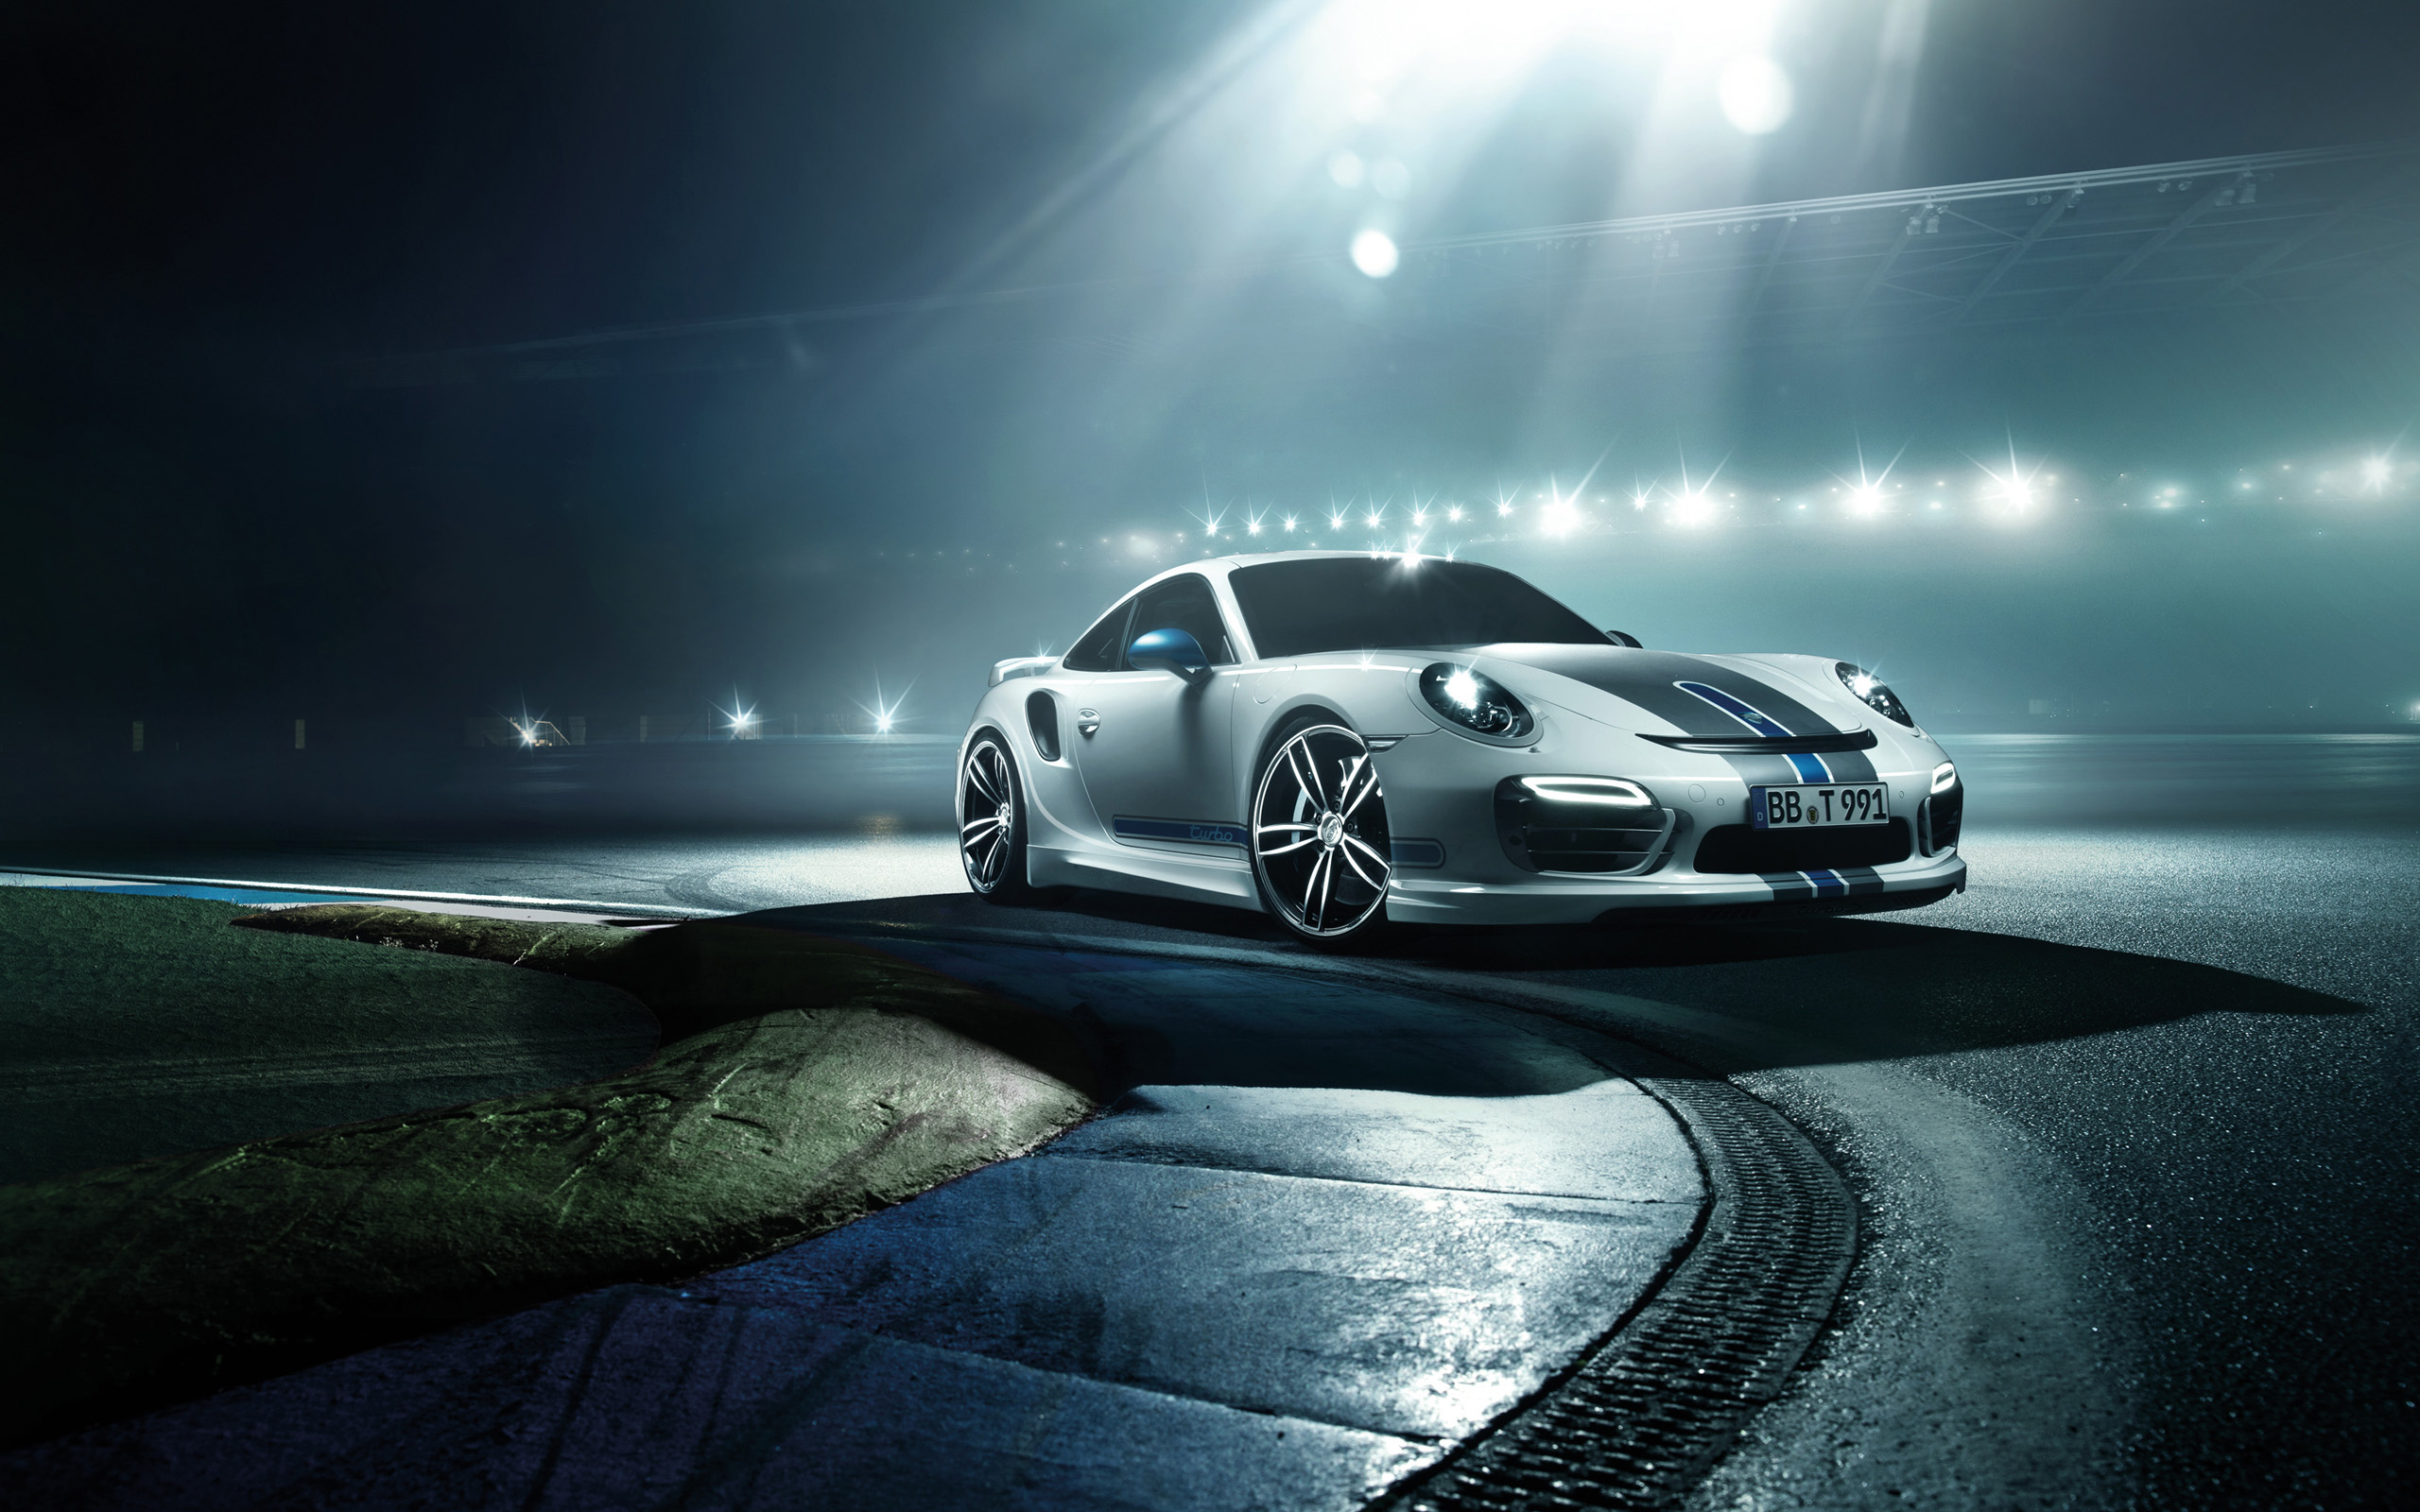 2014 techart porsche 911 turbo hd wallpaper - Porsche 911 Wallpaper Widescreen